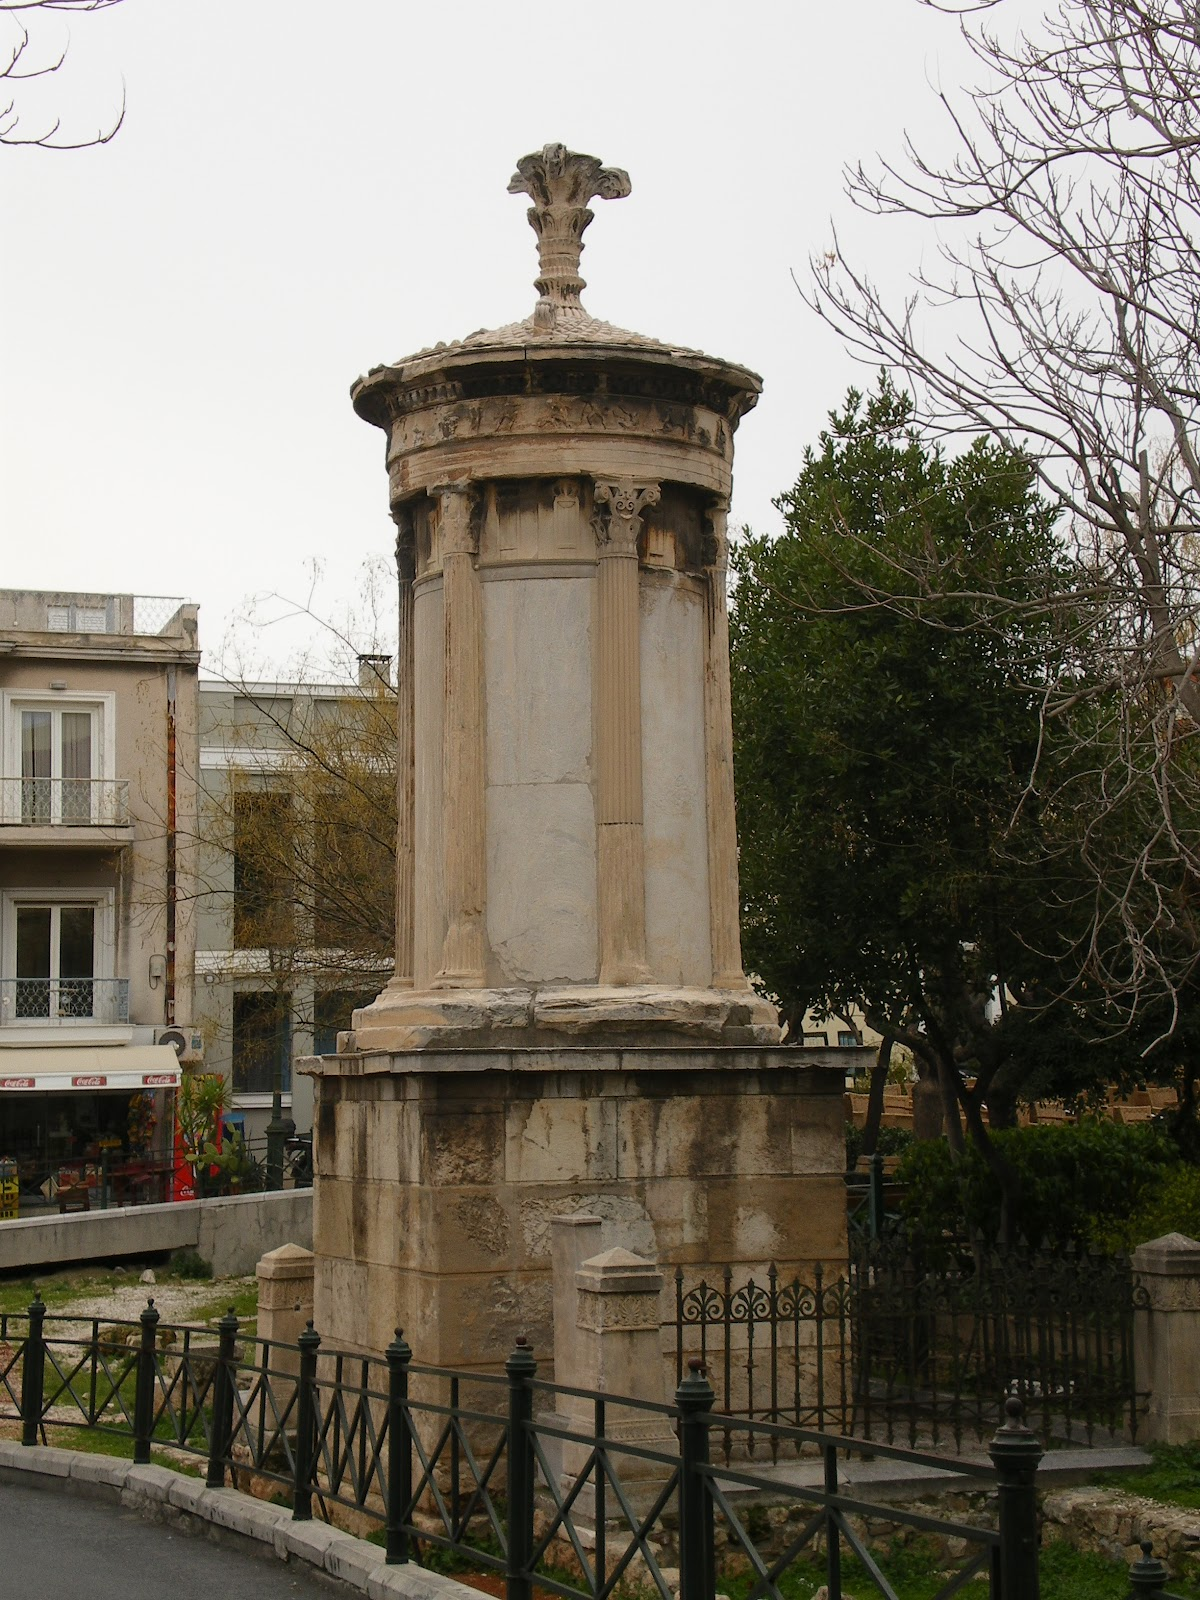 The Diogenes Lantern in Plaka